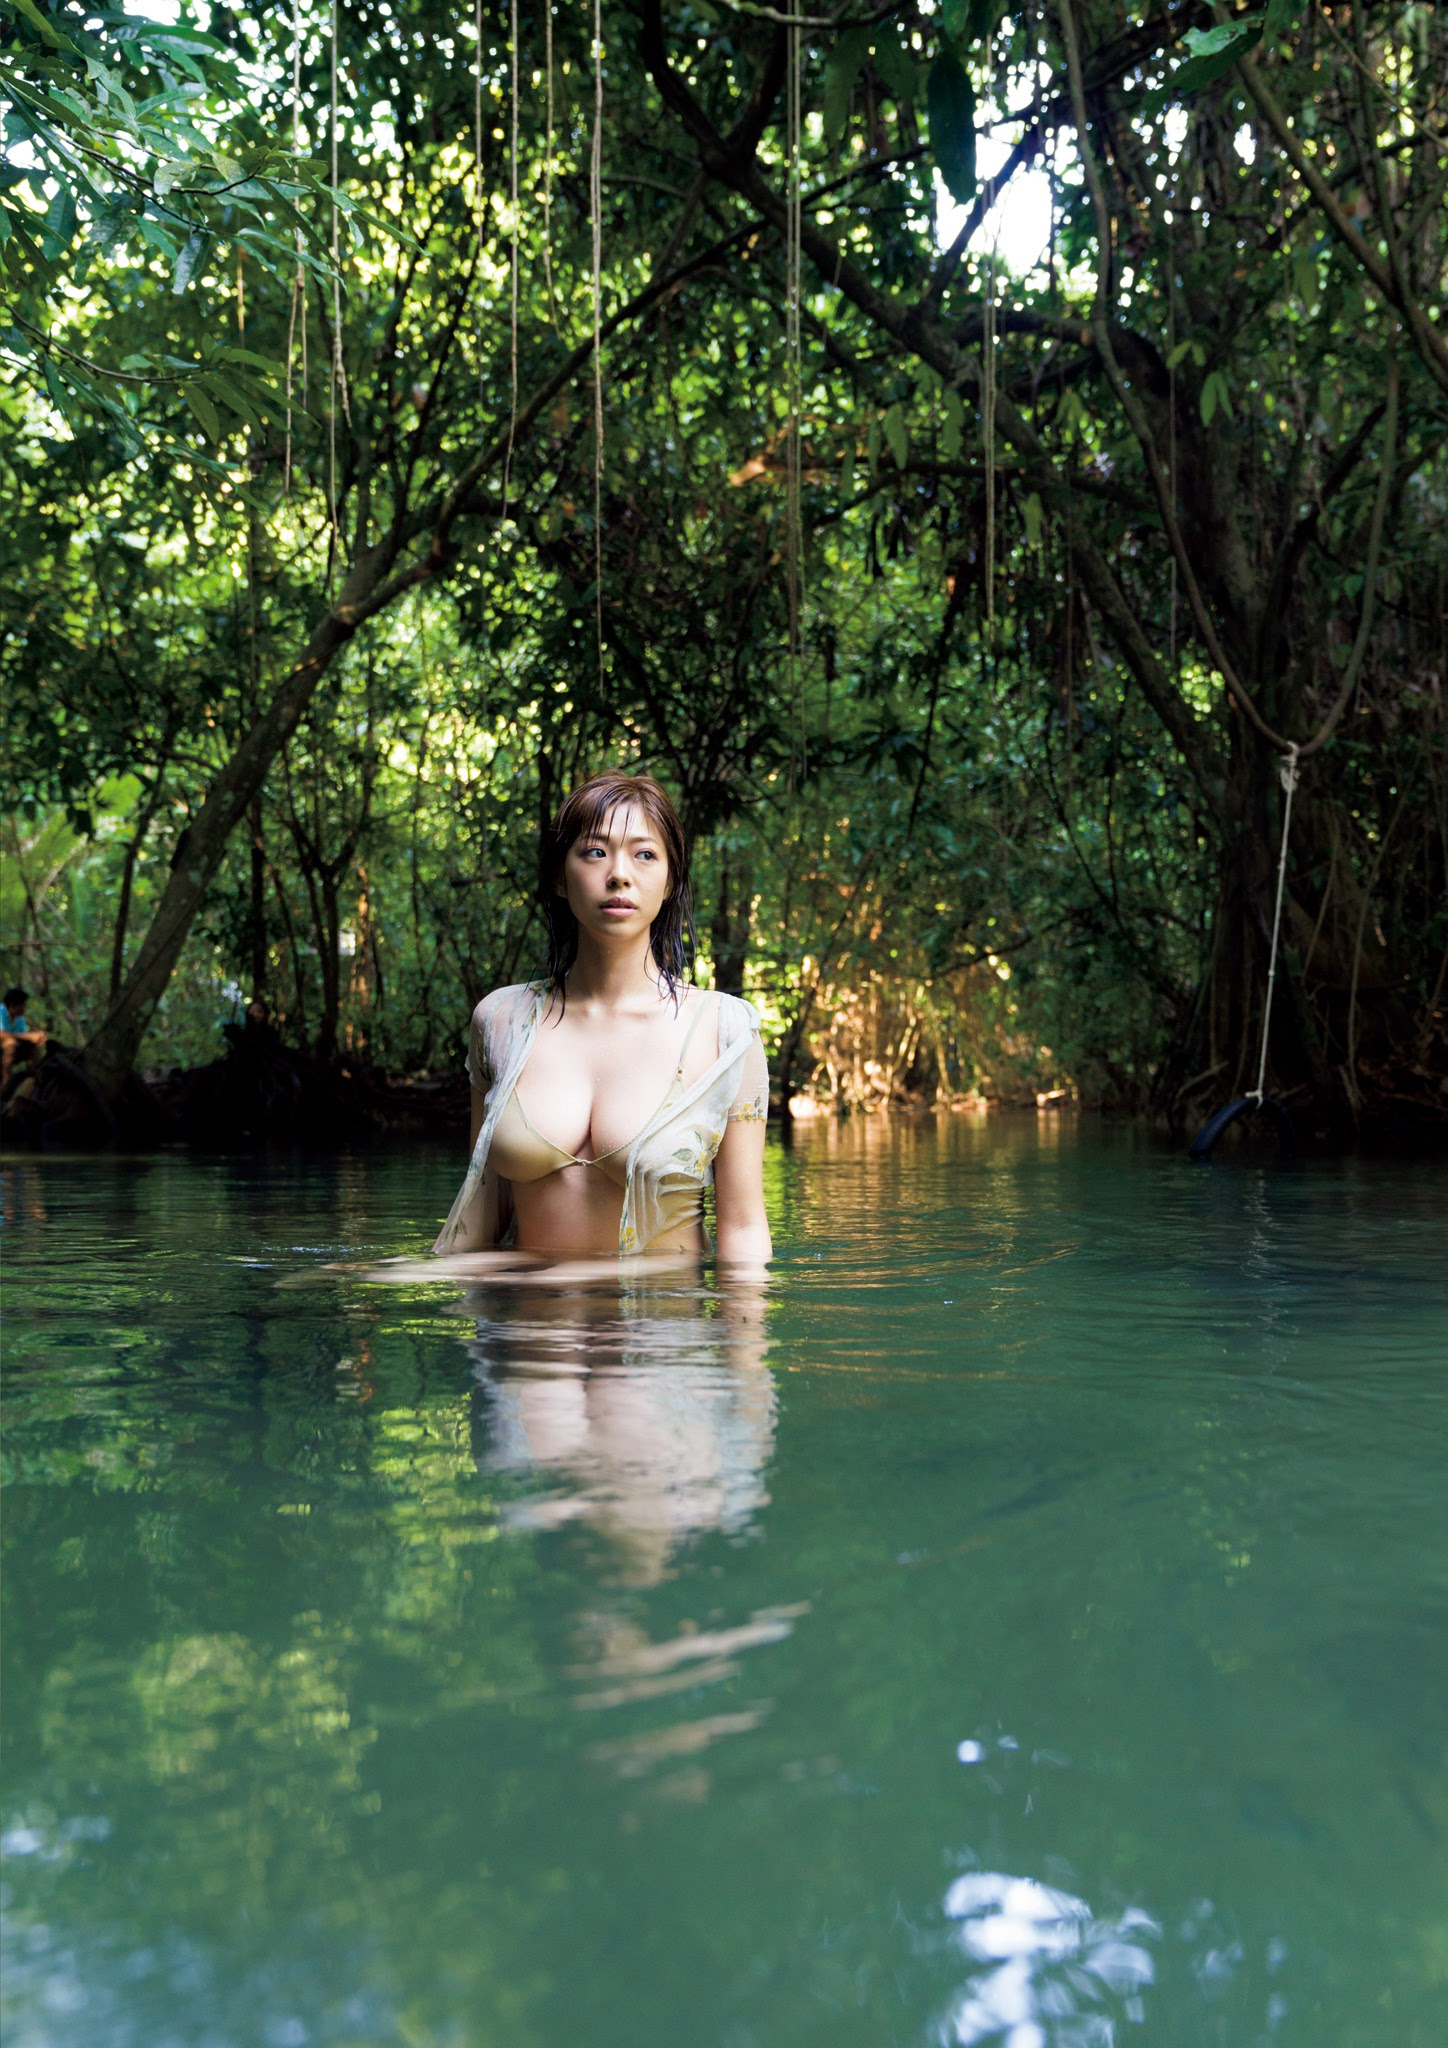 Super body of H cup Minami Wachi 2020 that exposes body and mind in tropical Thailand034